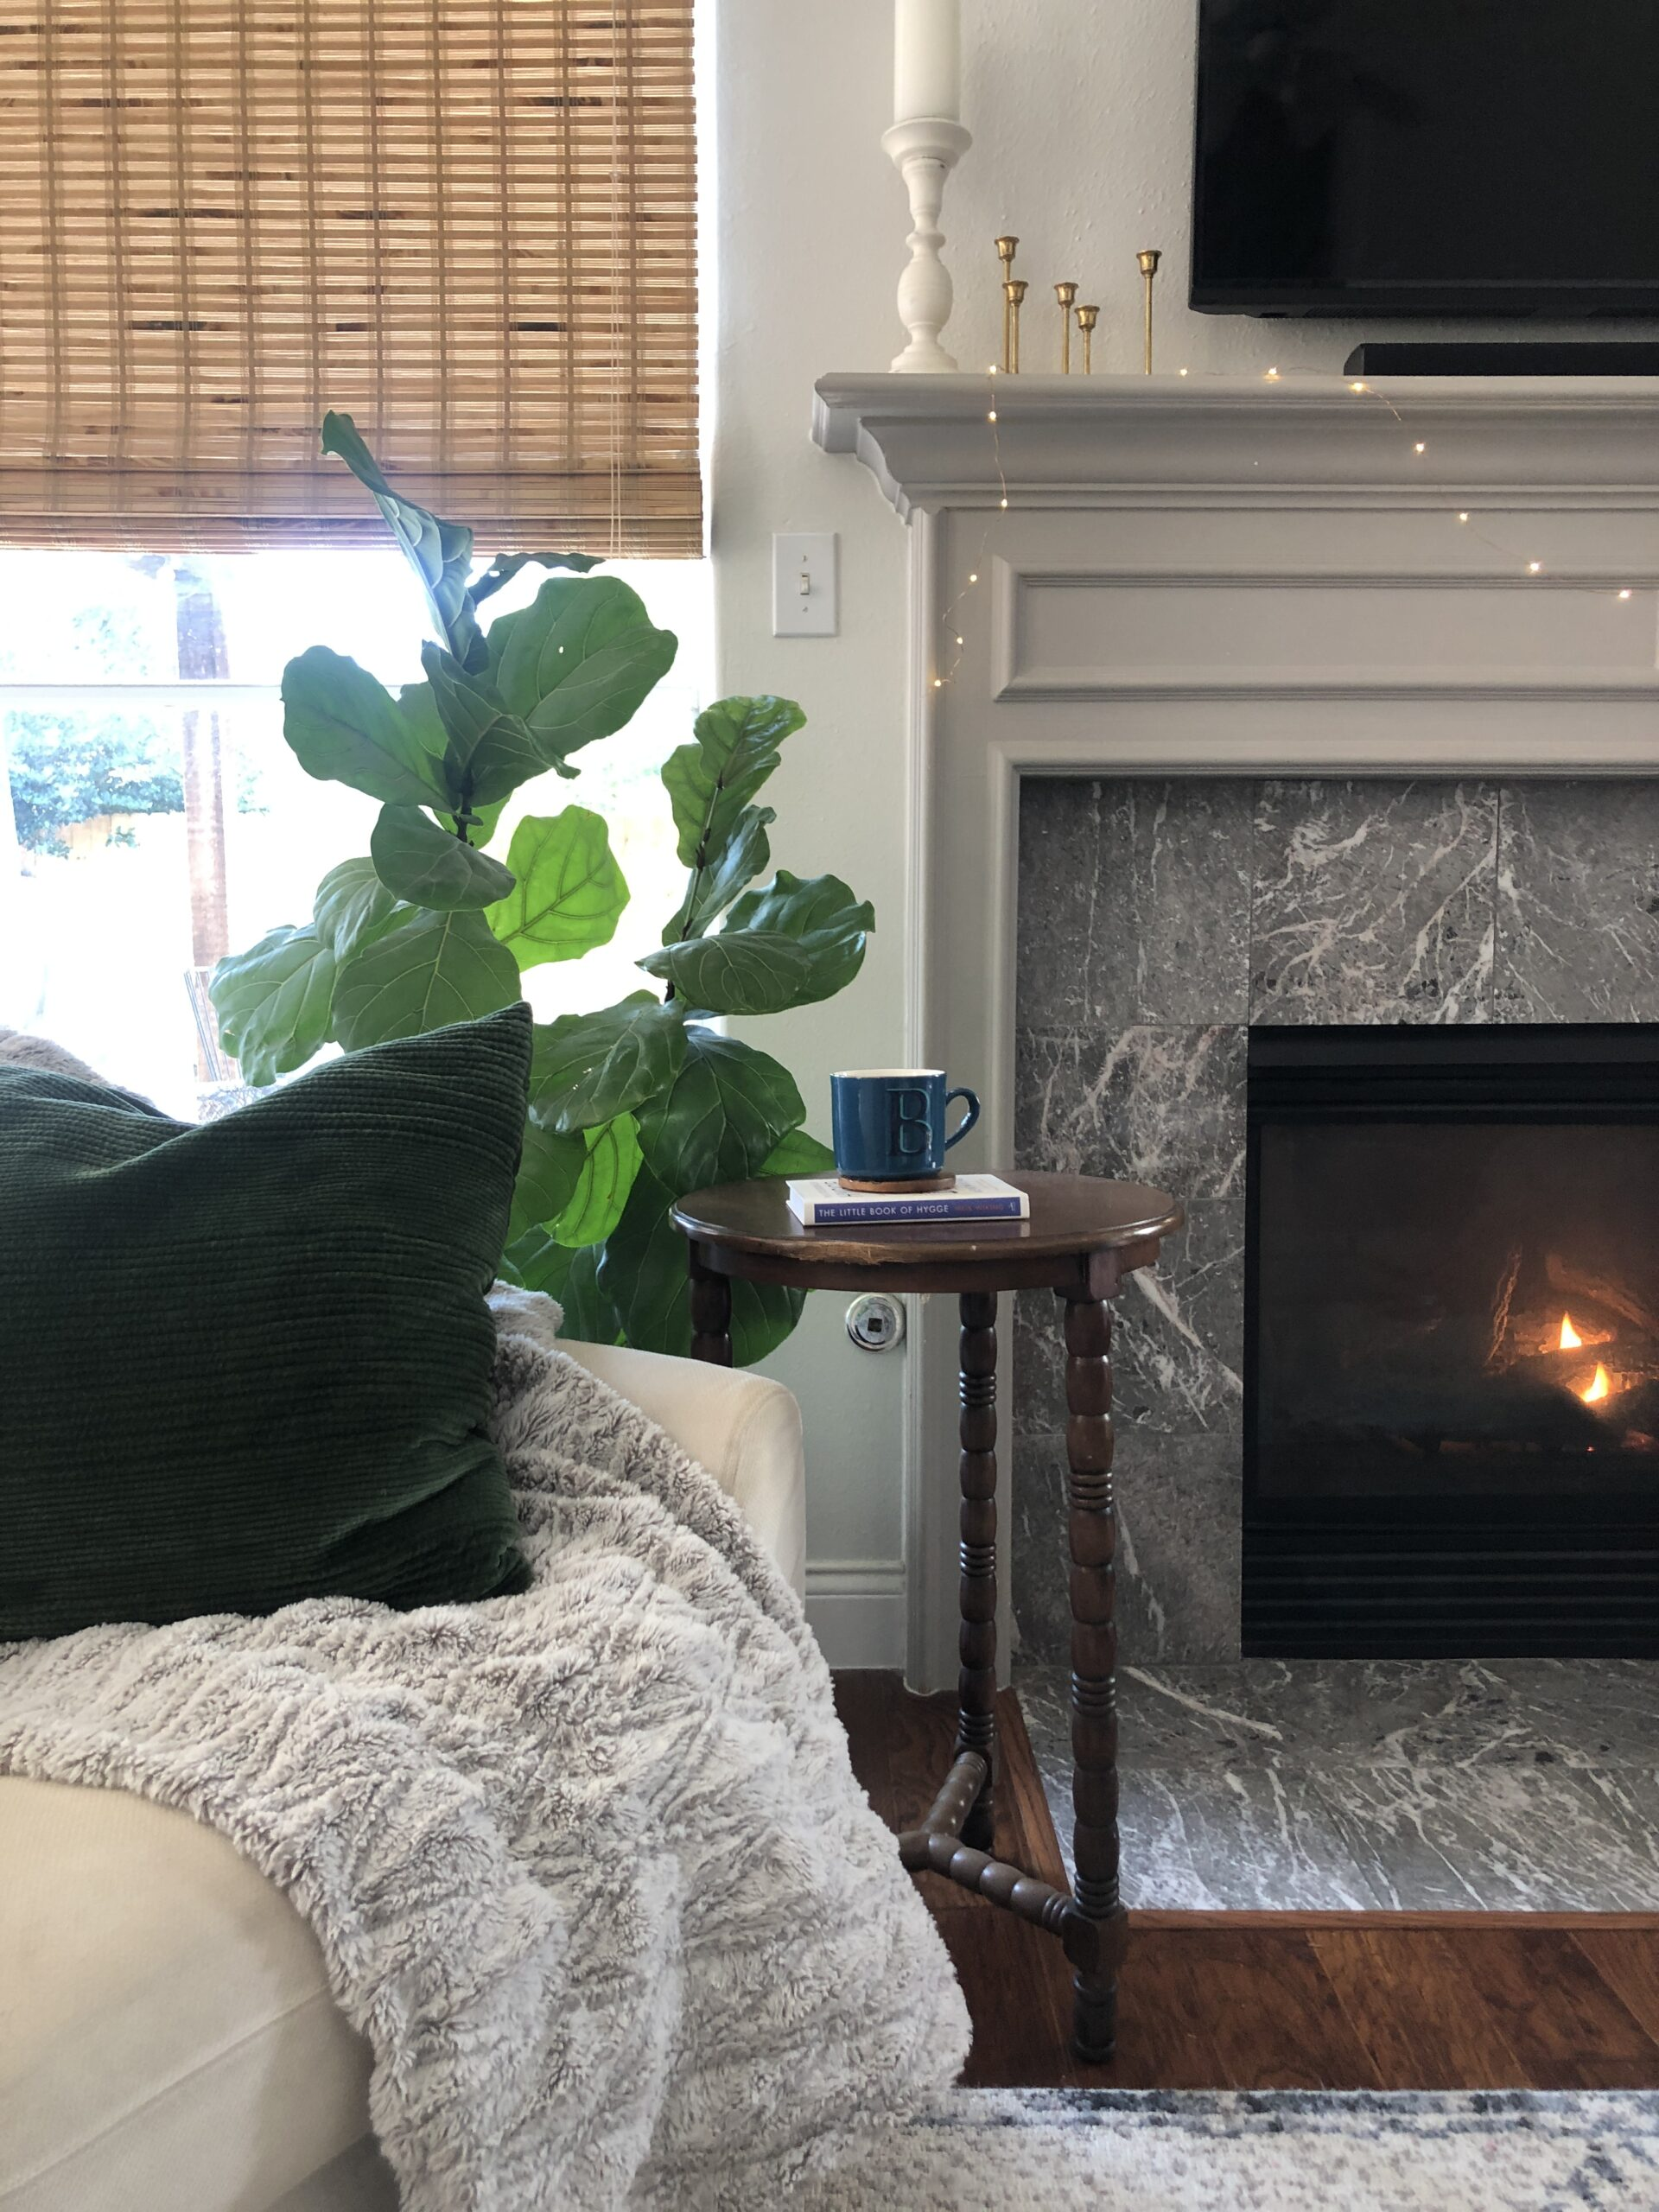 cozy hygge living room with fireplace, soft blanket, and cup of tea